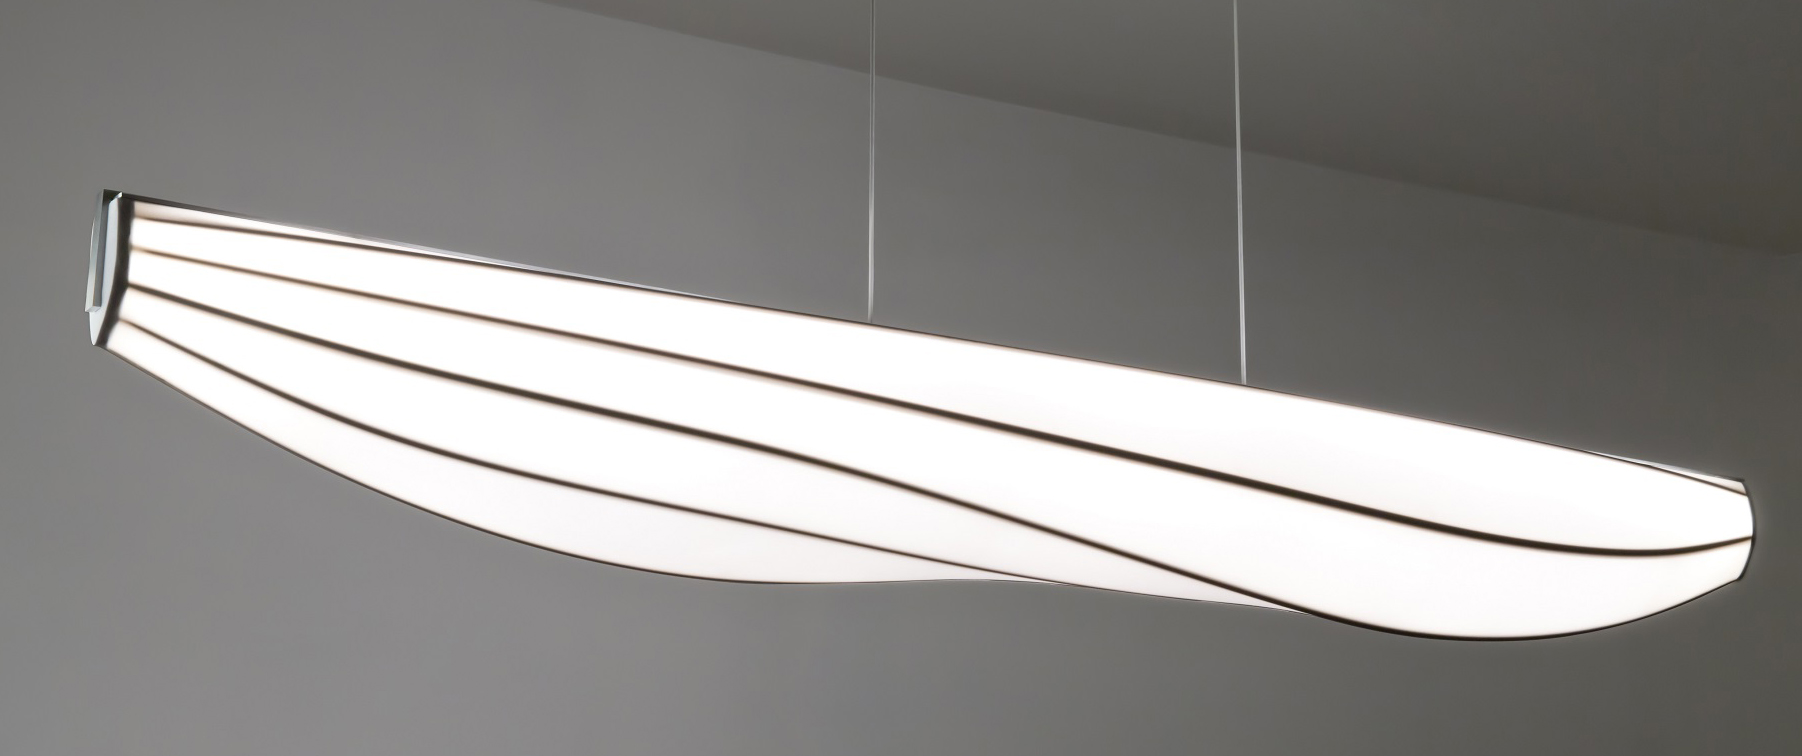 Lay Your Eyes on Lenis at Light! Design Expo – Archetype Lighting